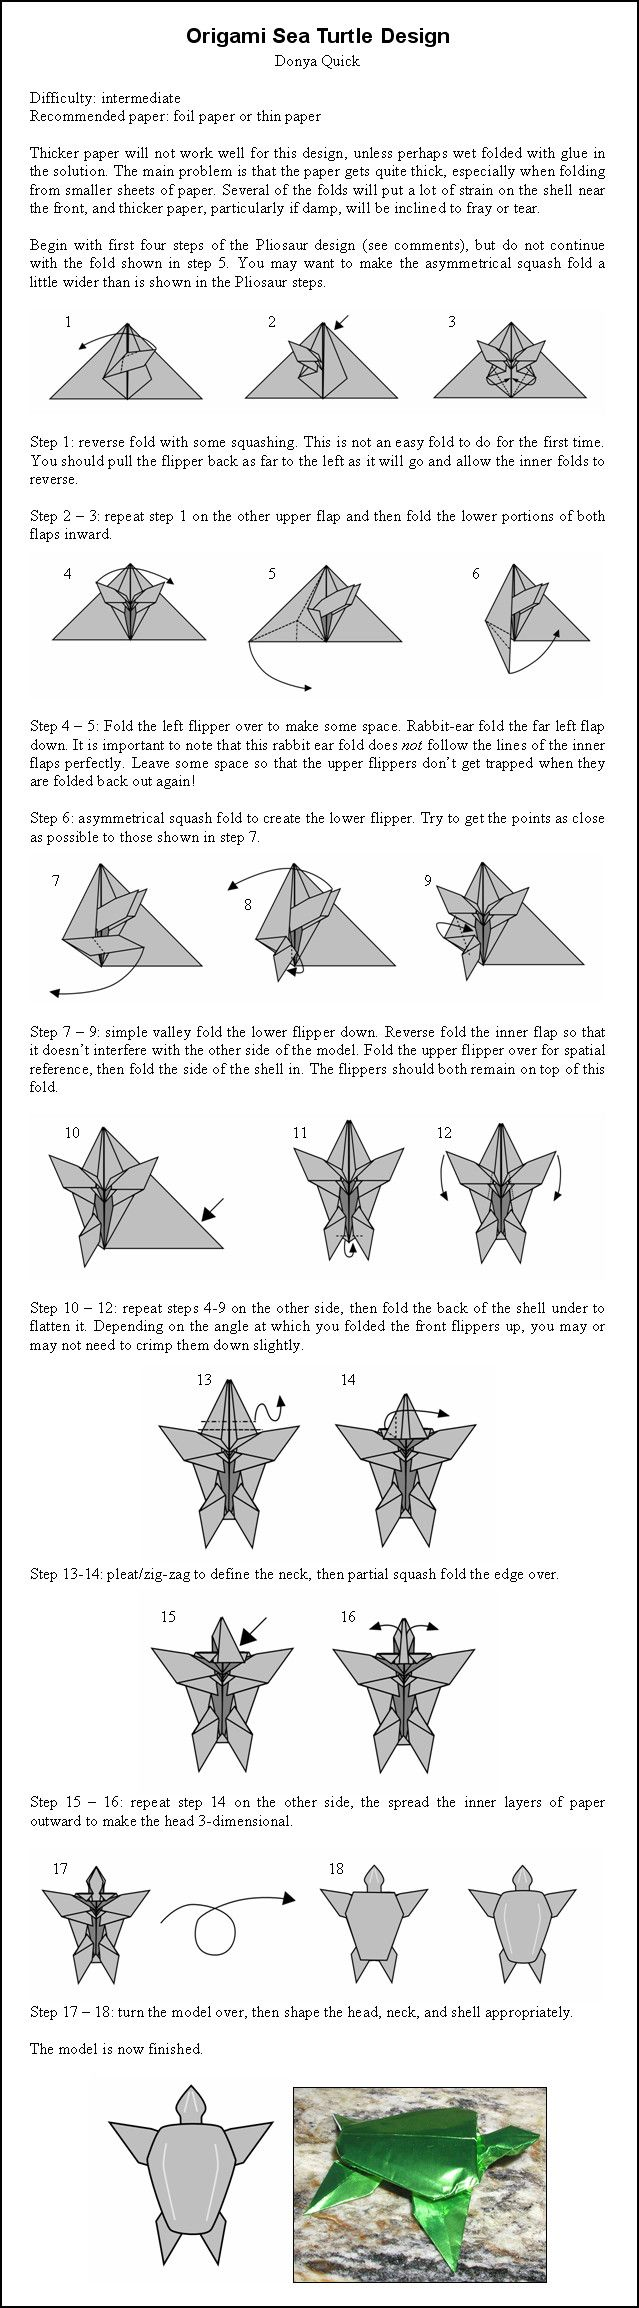 Folding Diagram 1 Of 3 Scottish Terrier Dog Money Origami Sea Turtle Craft Ideas Paper Crafts